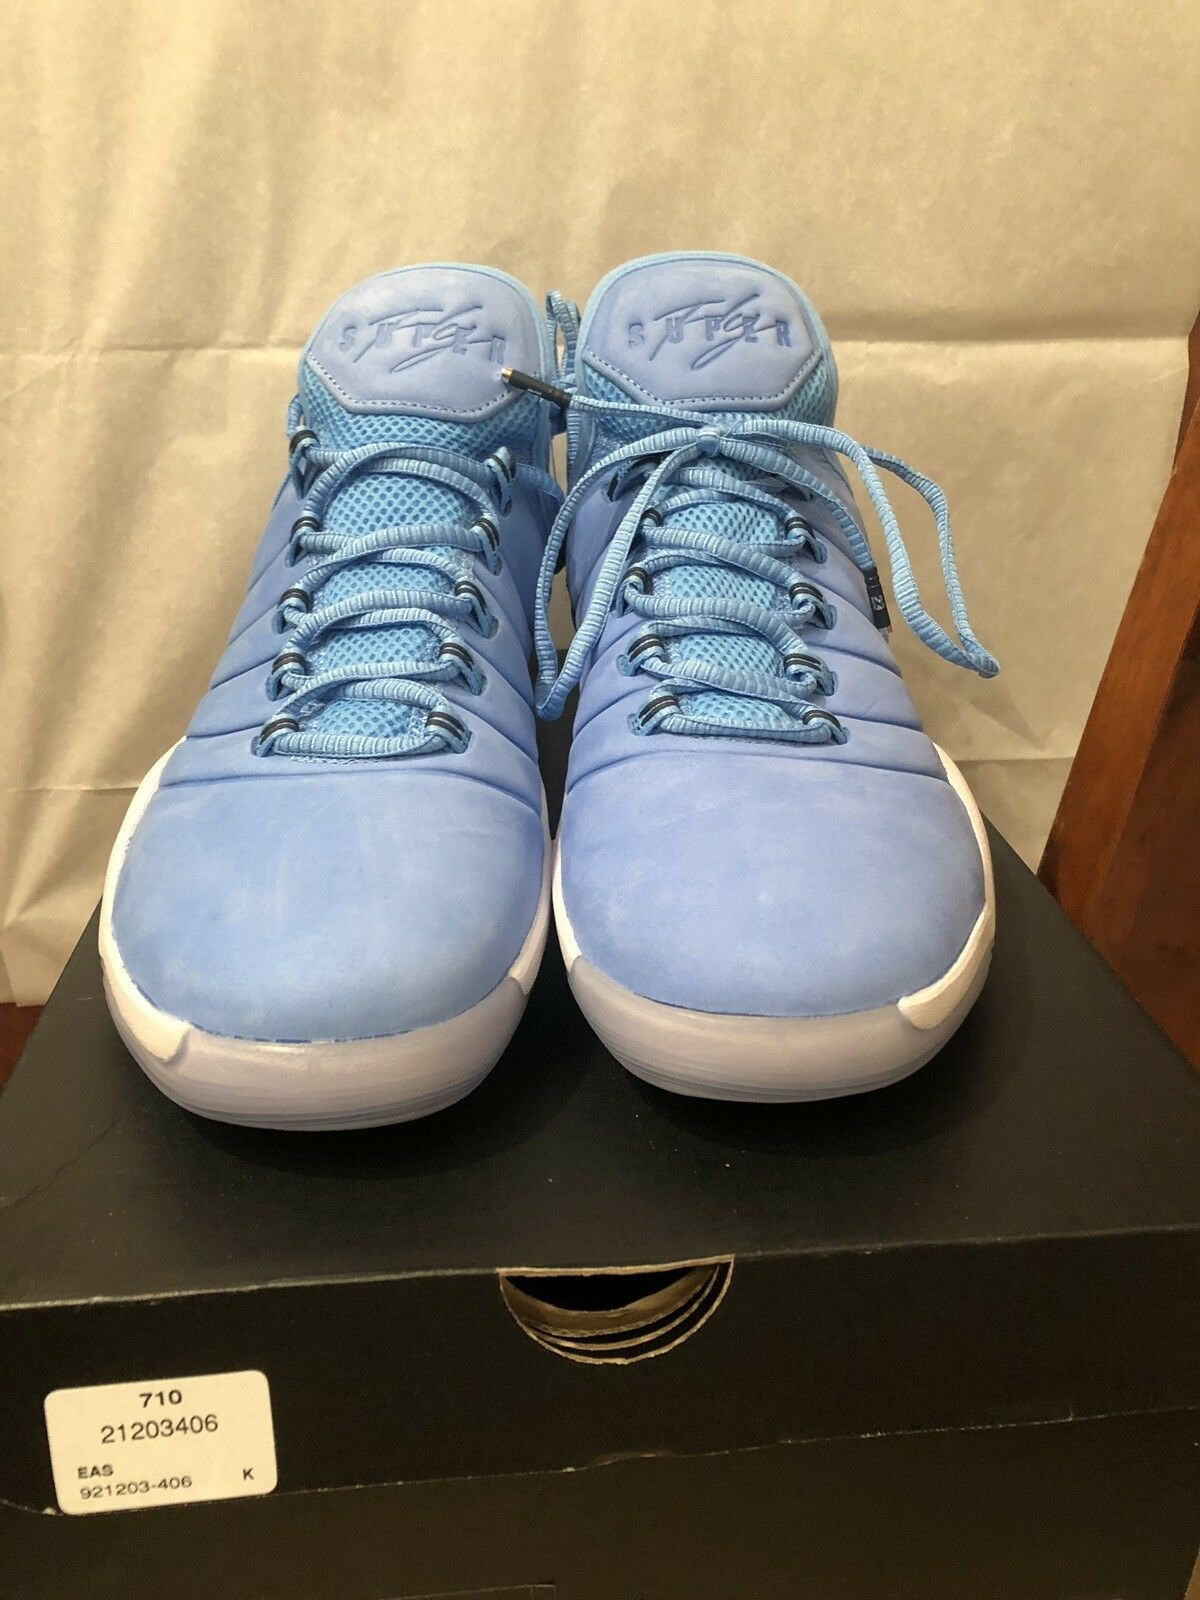 NIKE JORDAN SUPER.FLY 2017 MENS SHOES TRAINERS UK SIZE 10   921203 406